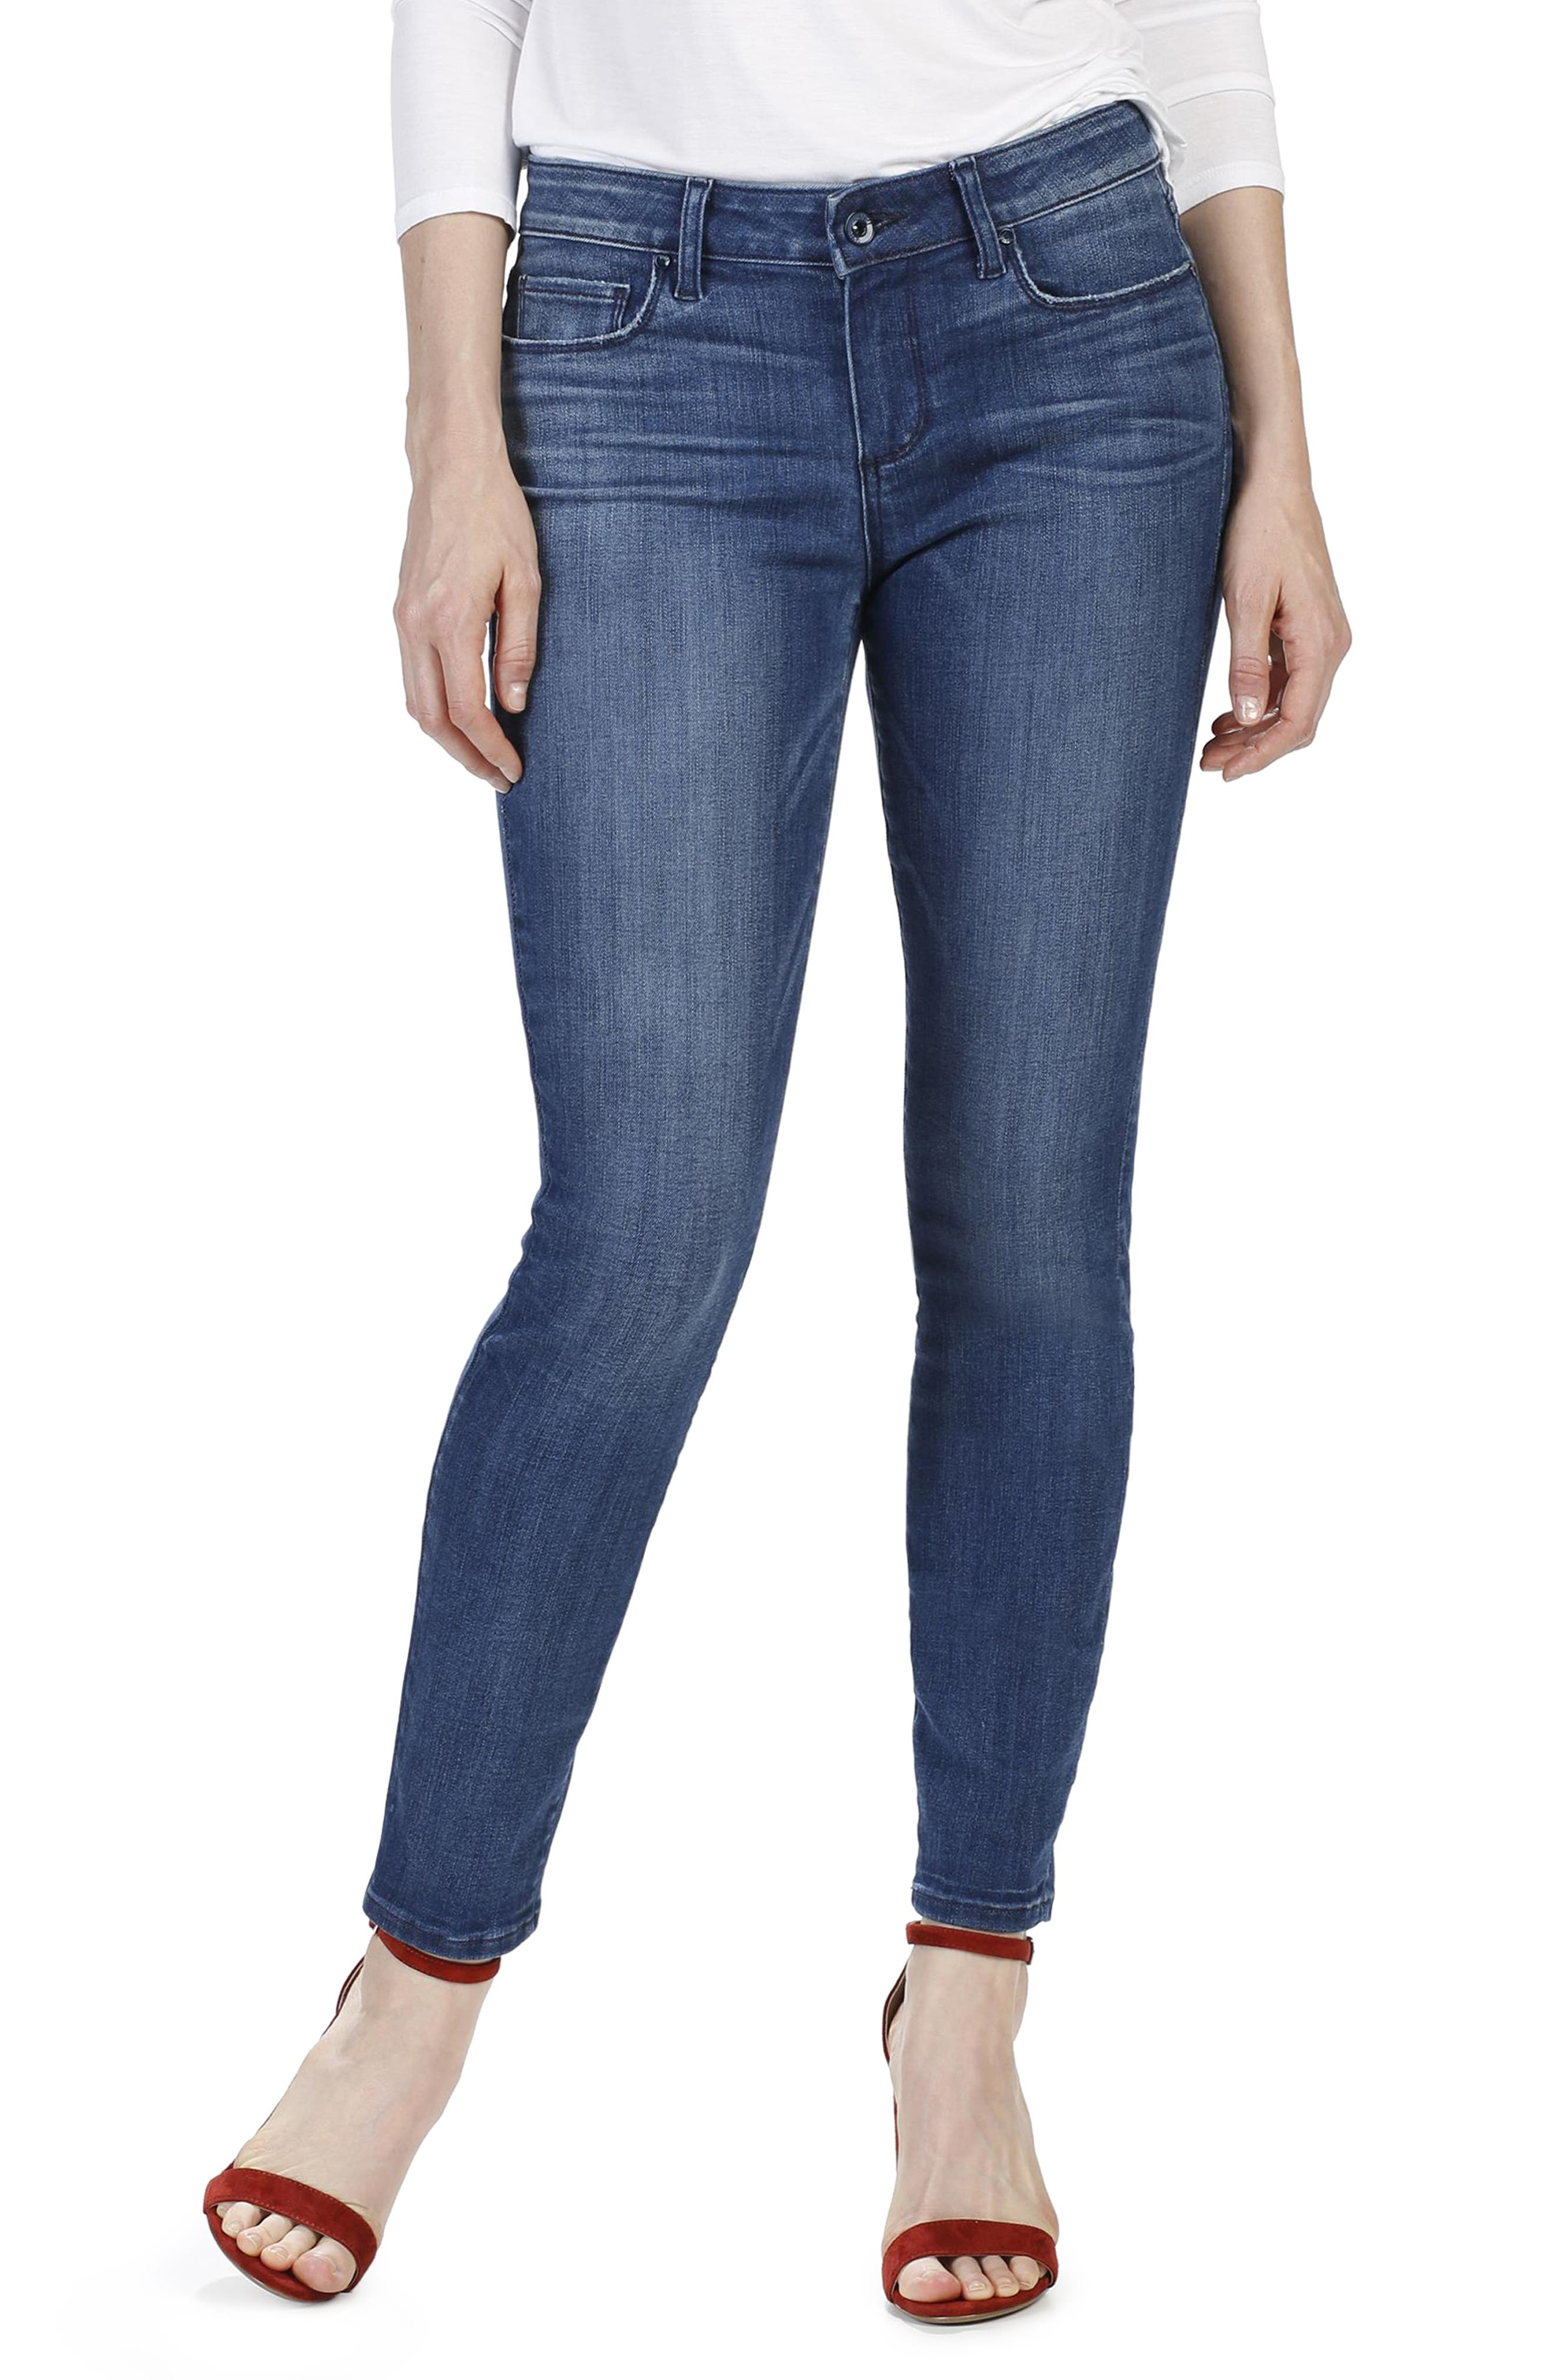 Transcend - Verdugo Ankle Ultra Skinny Jeans,                             Main thumbnail 1, color,                             400